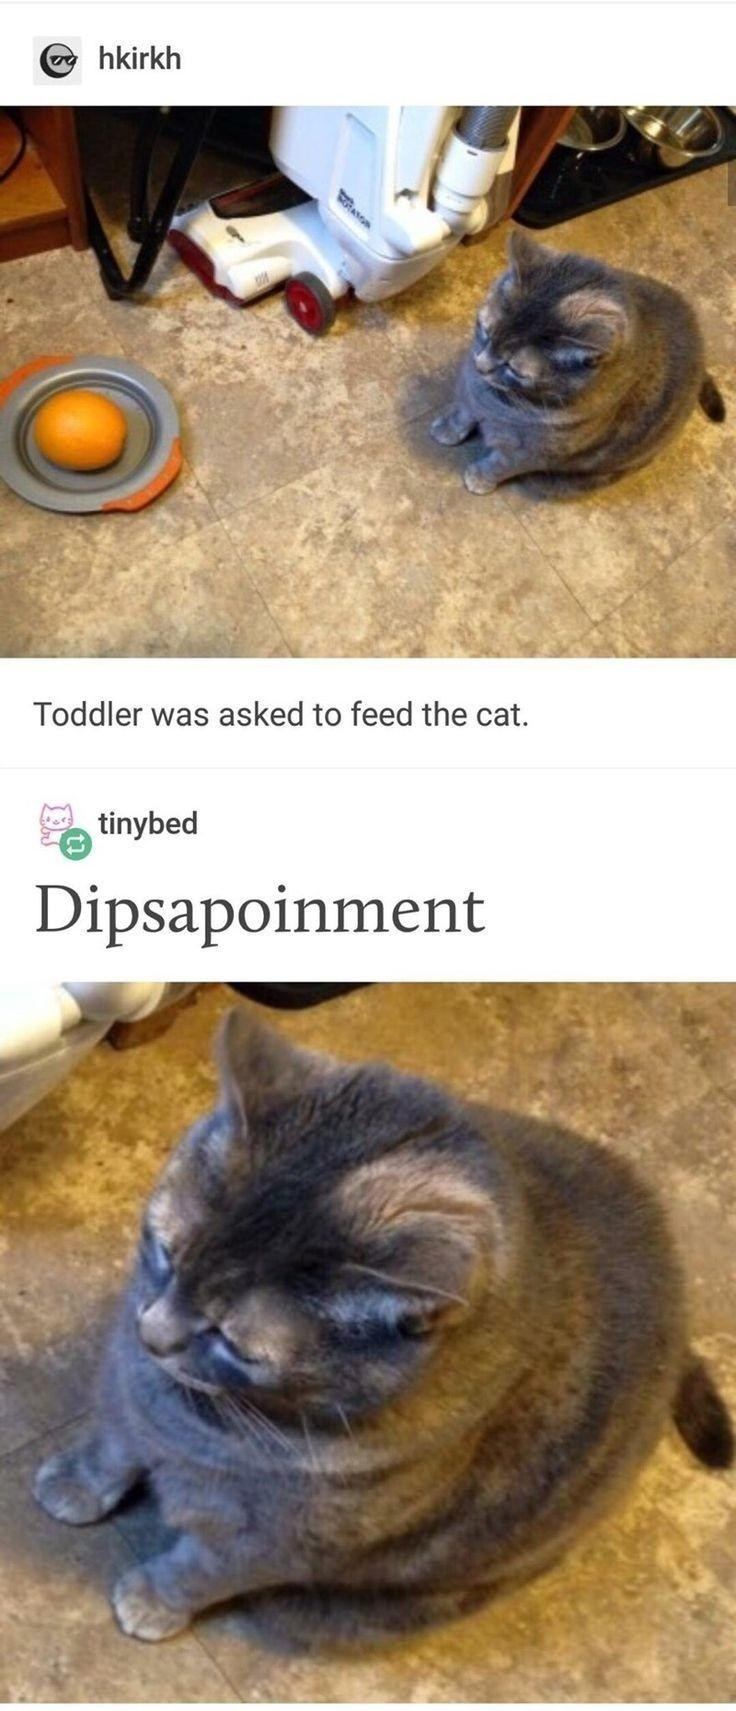 Cat - hkirkh Toddler was asked to feed the cat. tinybed Dipsapoinment